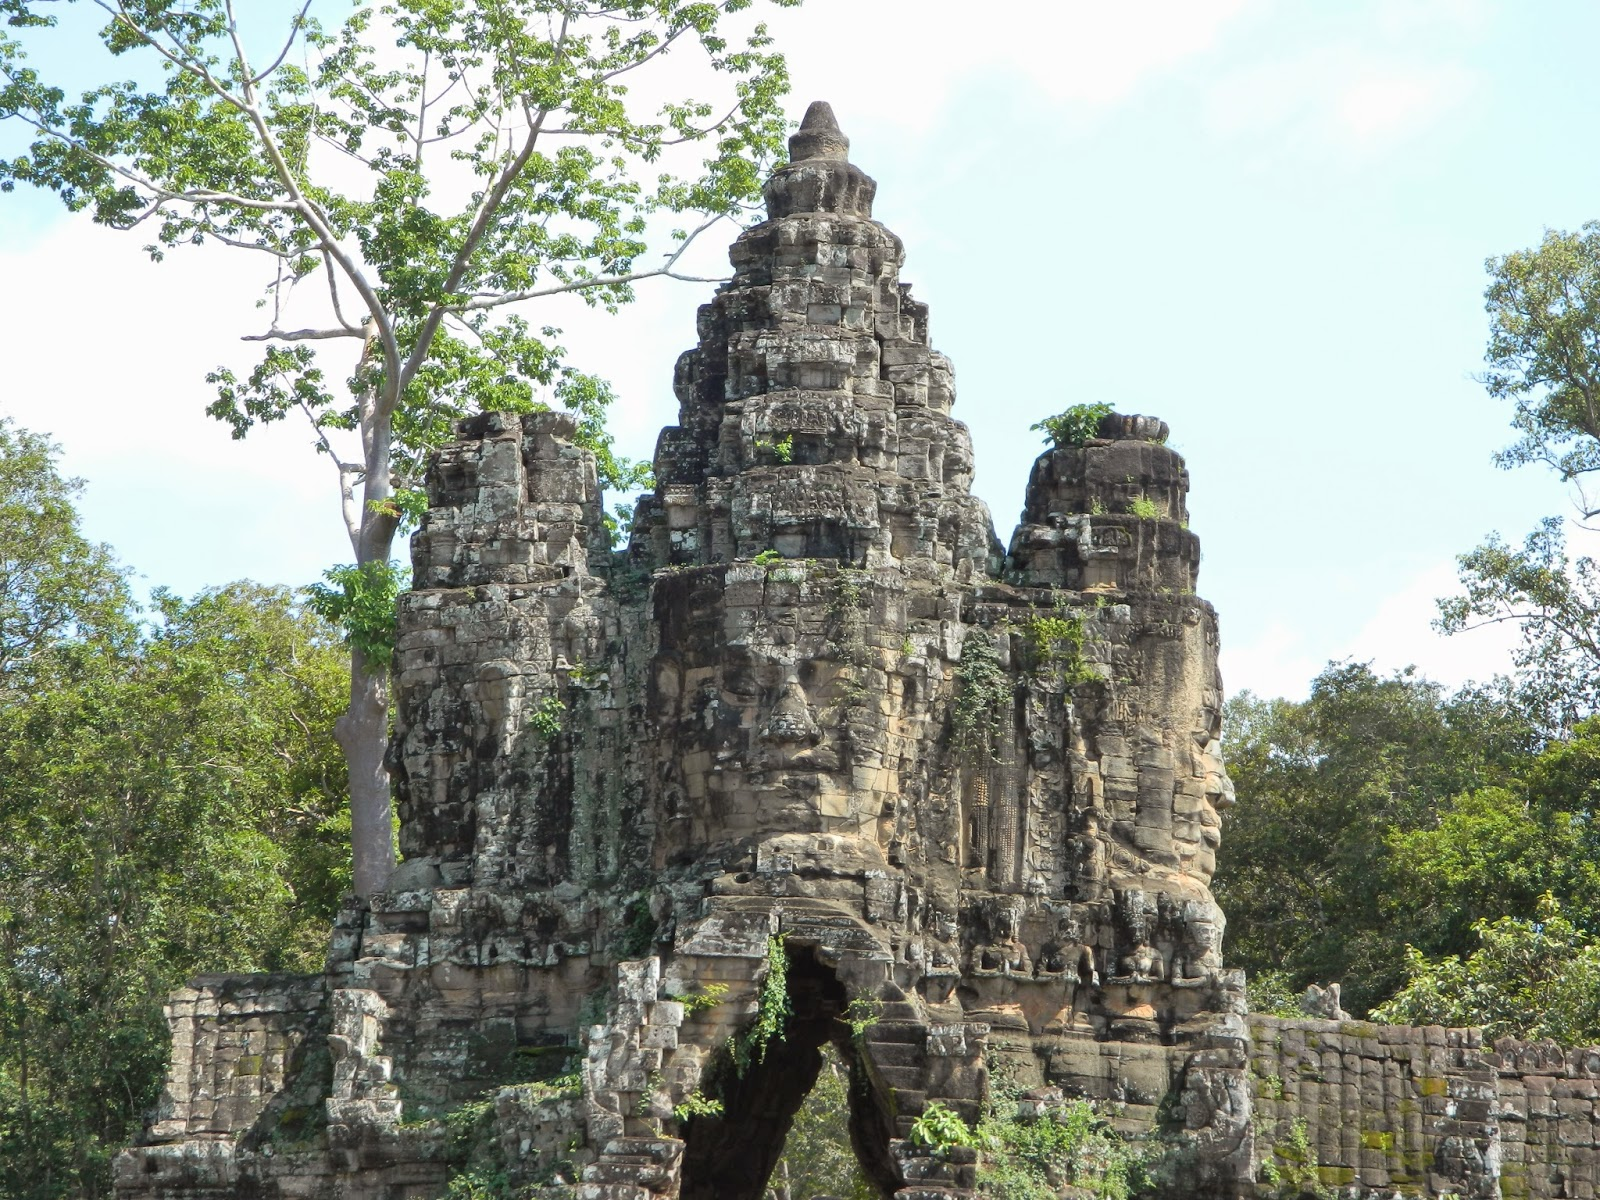 Entrance to the Bayon Temple